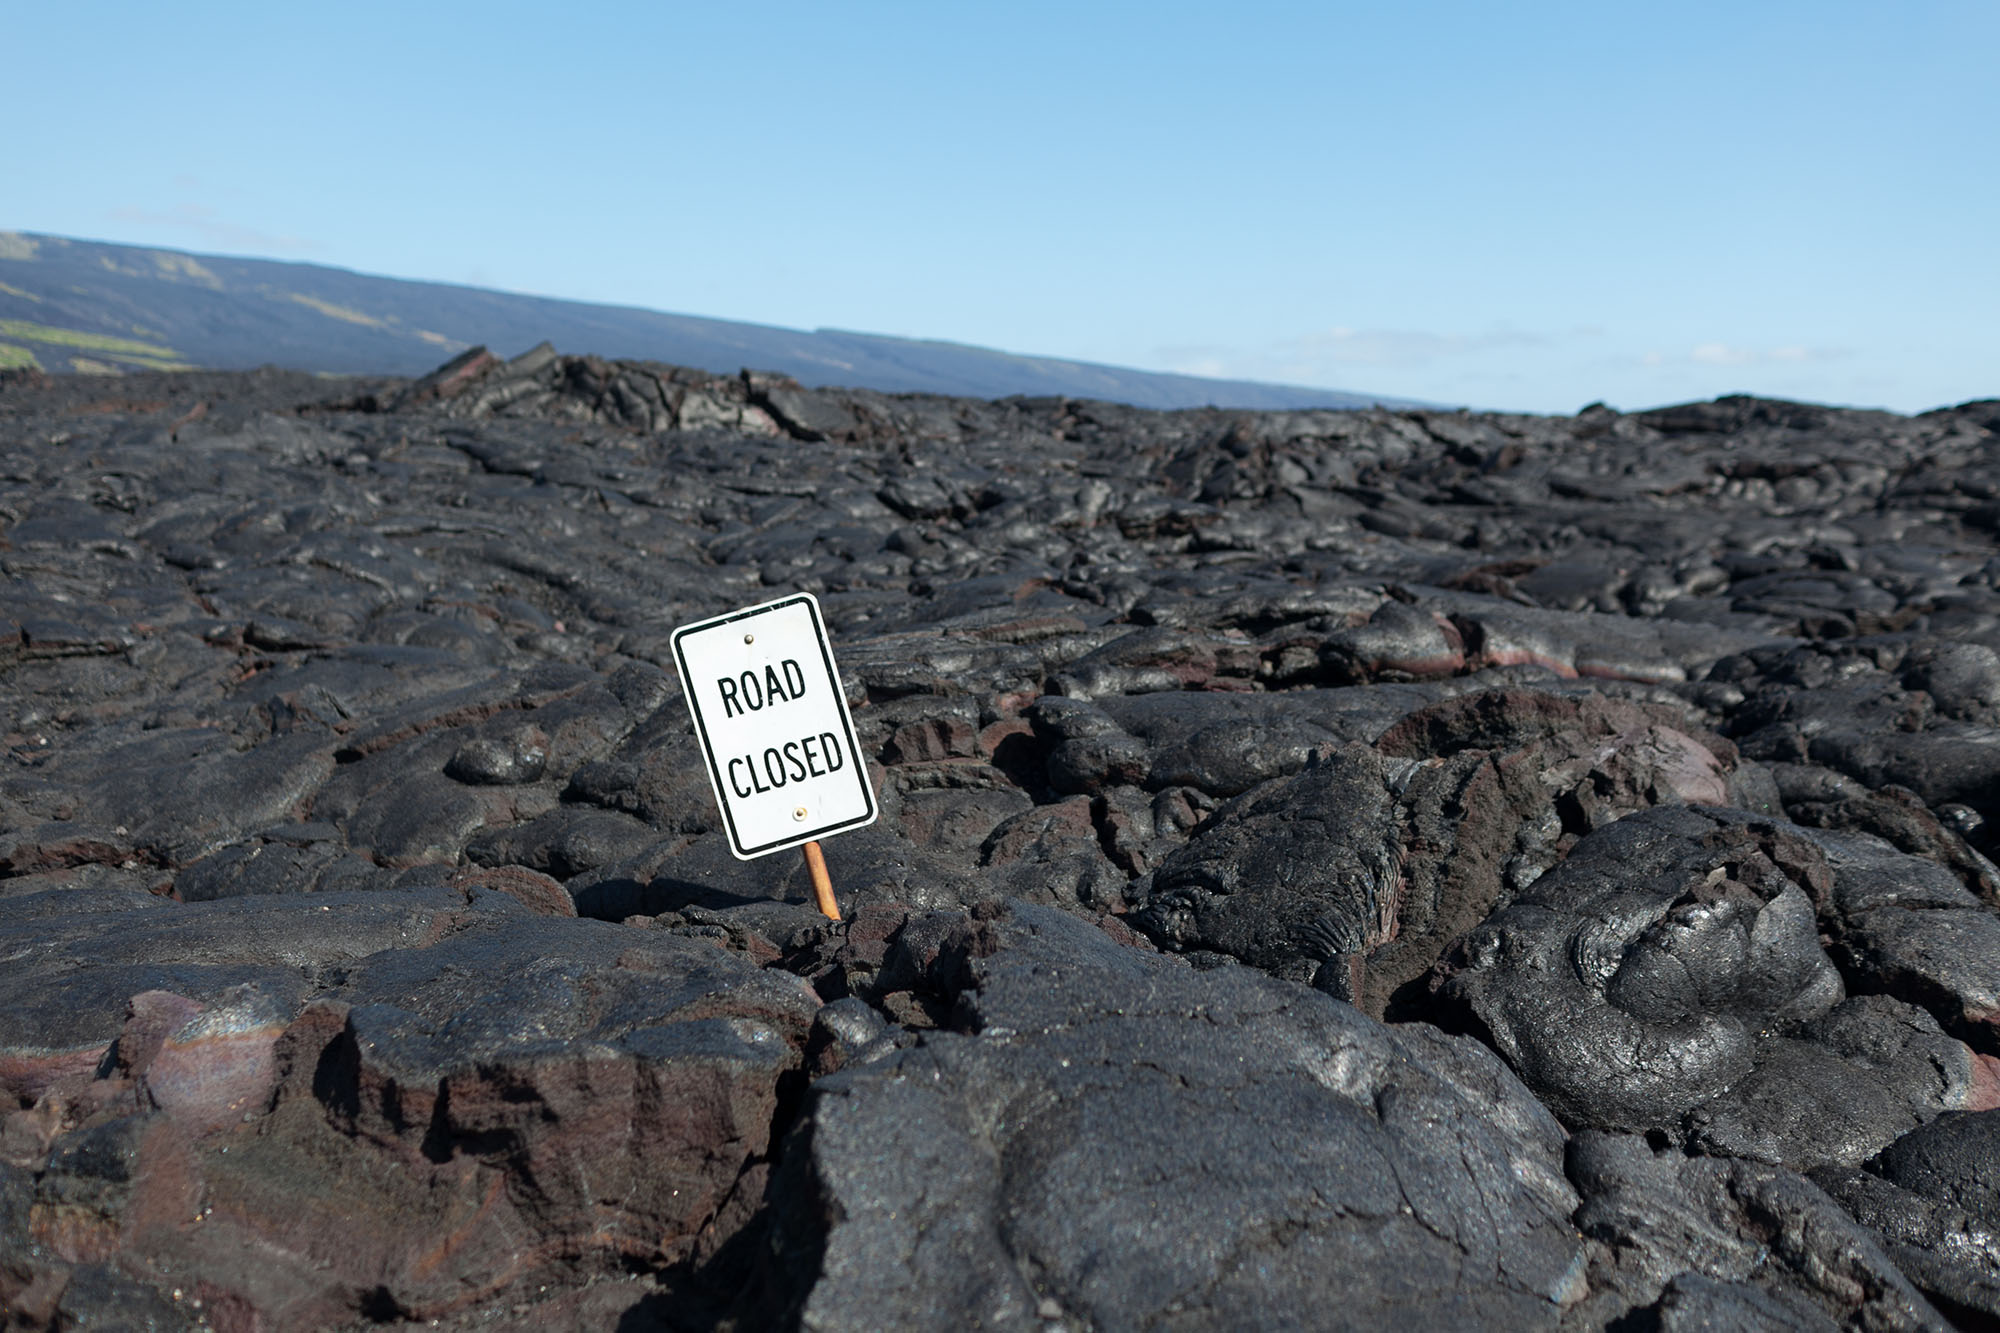 Road closed sign at Hawaii Volcanoes National Park on the Big Island in Hawaii.